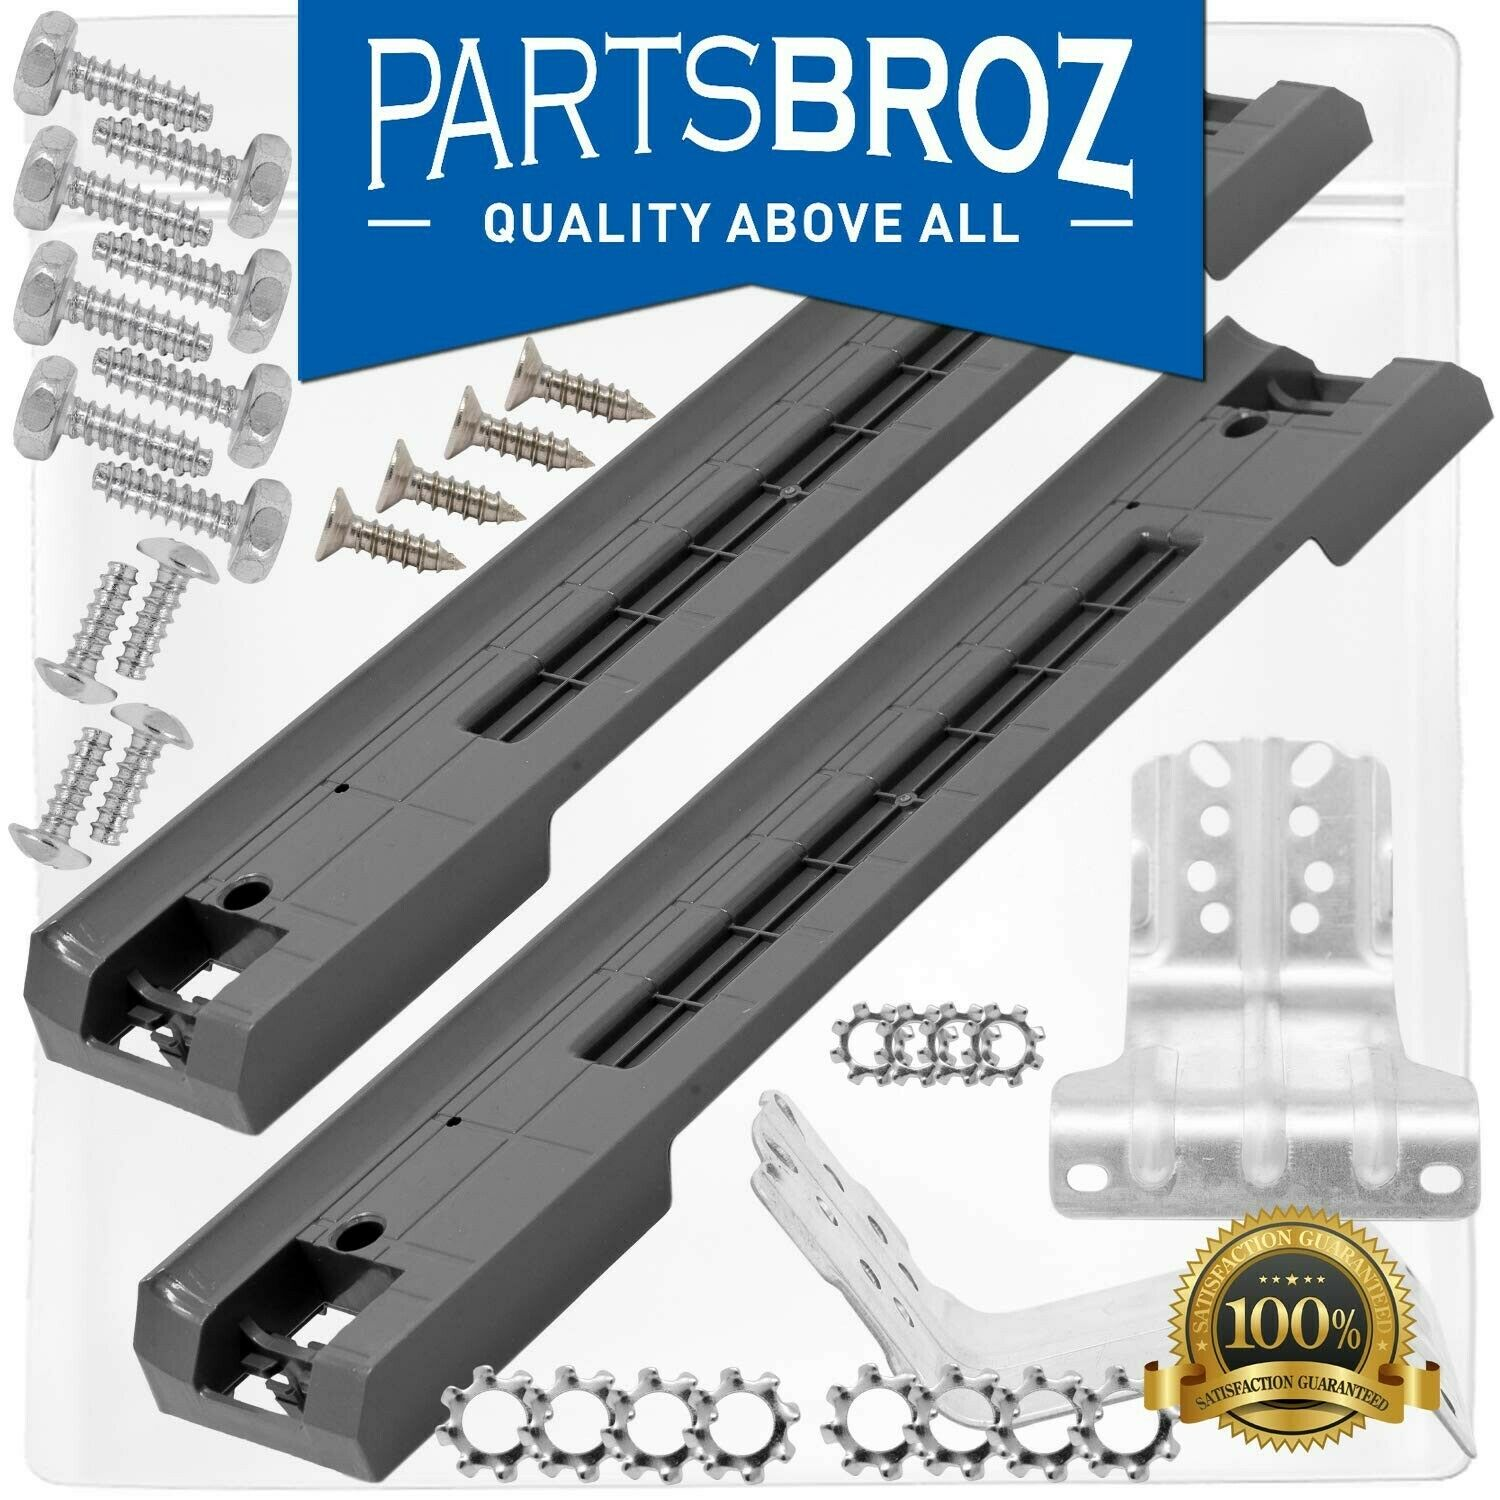 SKK-7A Stacking Kit for 27-Inch Samsung Front-Load Washers & Dryers by PartsBroz